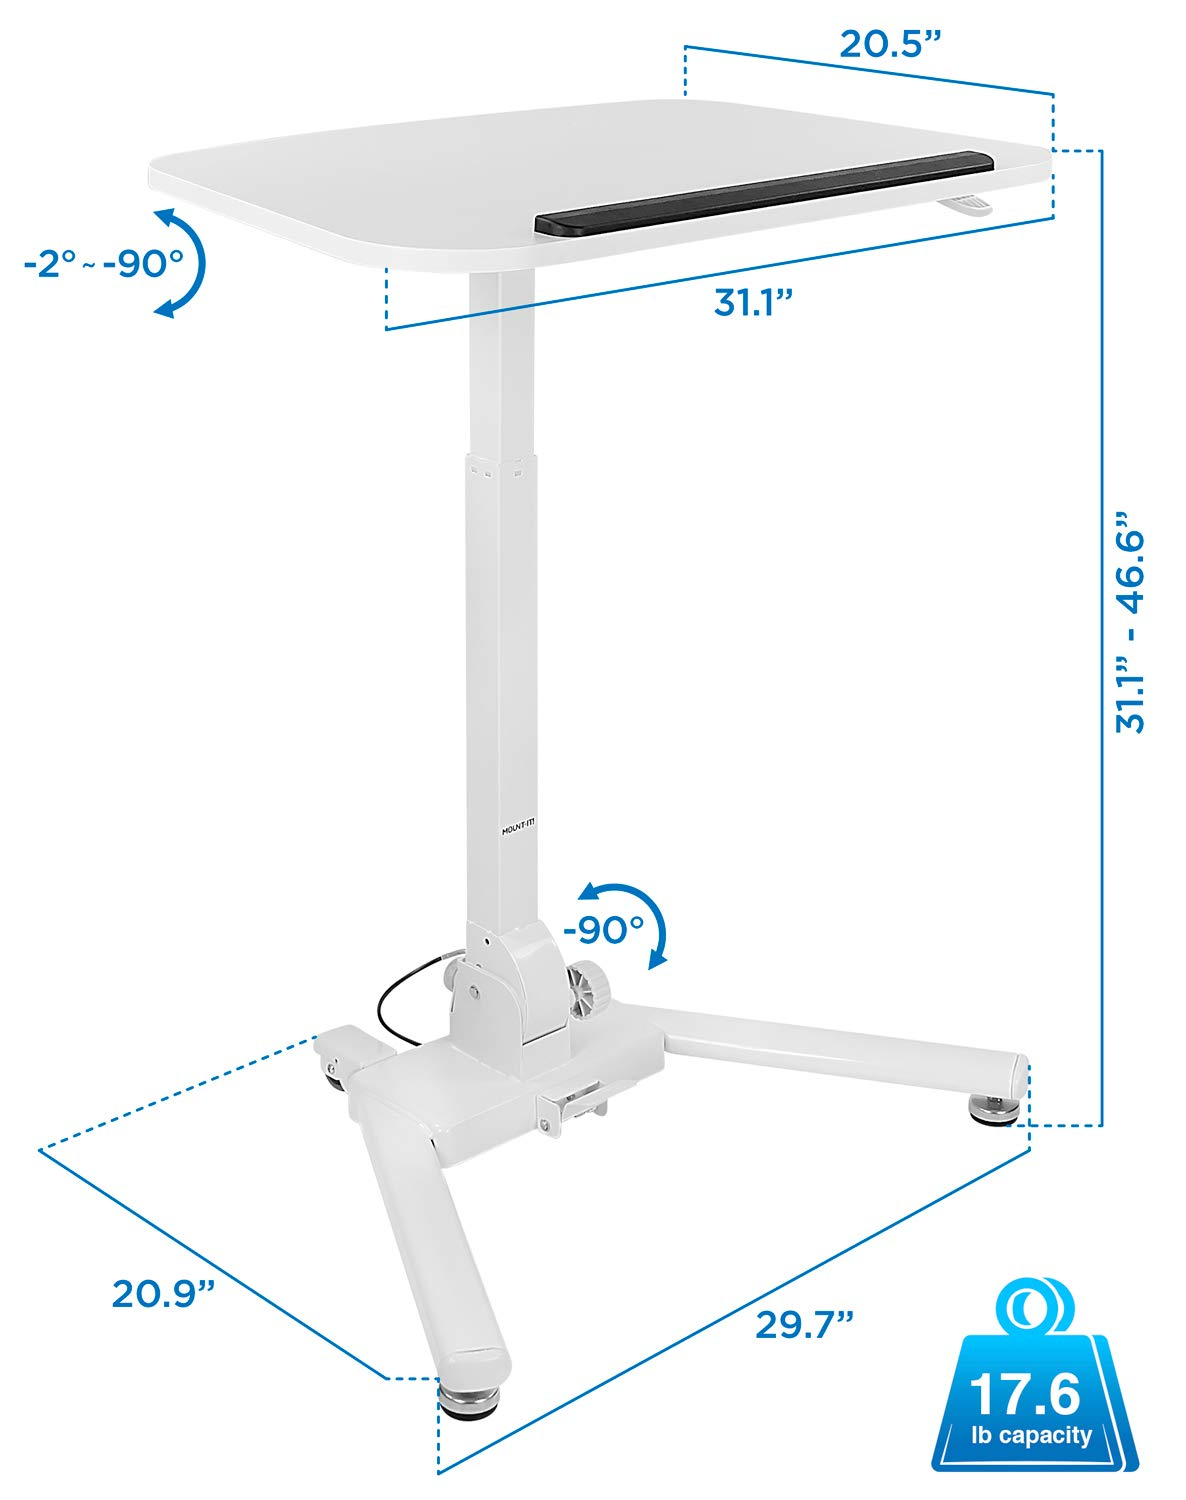 Mount-It! Standing Folding Laptop Cart, Sit Stand Mobile Desk with Height Adjustable 31.1'' x 20.5'' Platform, Supports up to 17.6 lbs, White (MI-7949) by Mount-It! (Image #8)